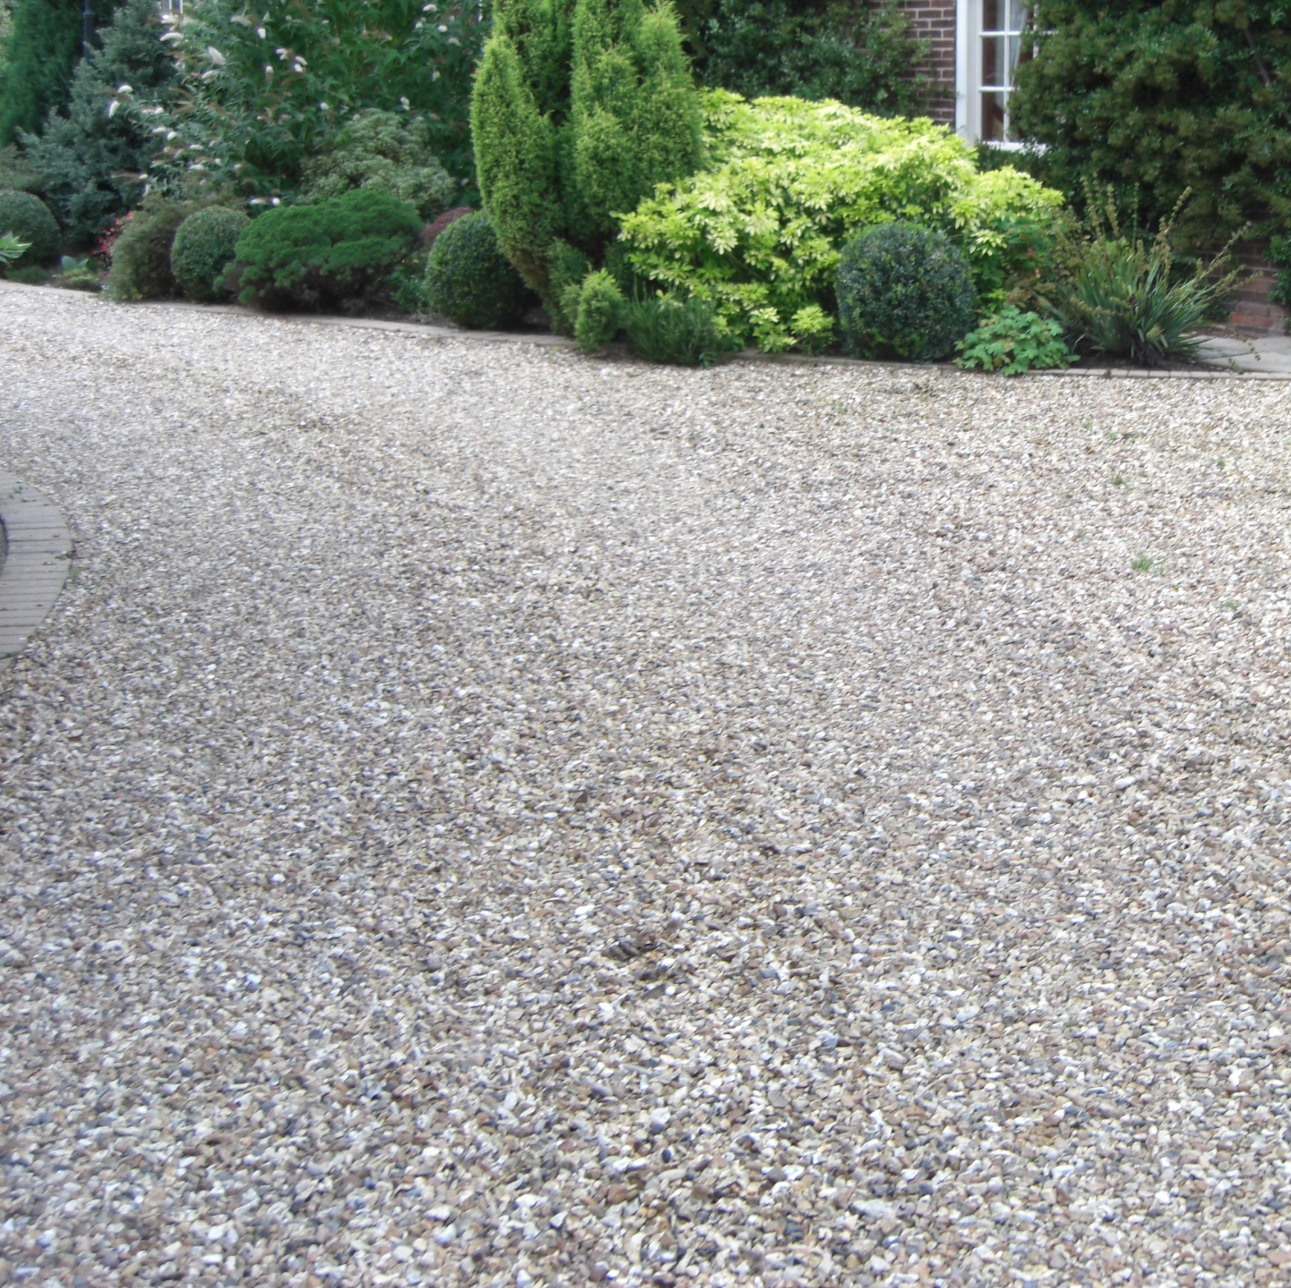 how to kill grass weeds on gravel driveway